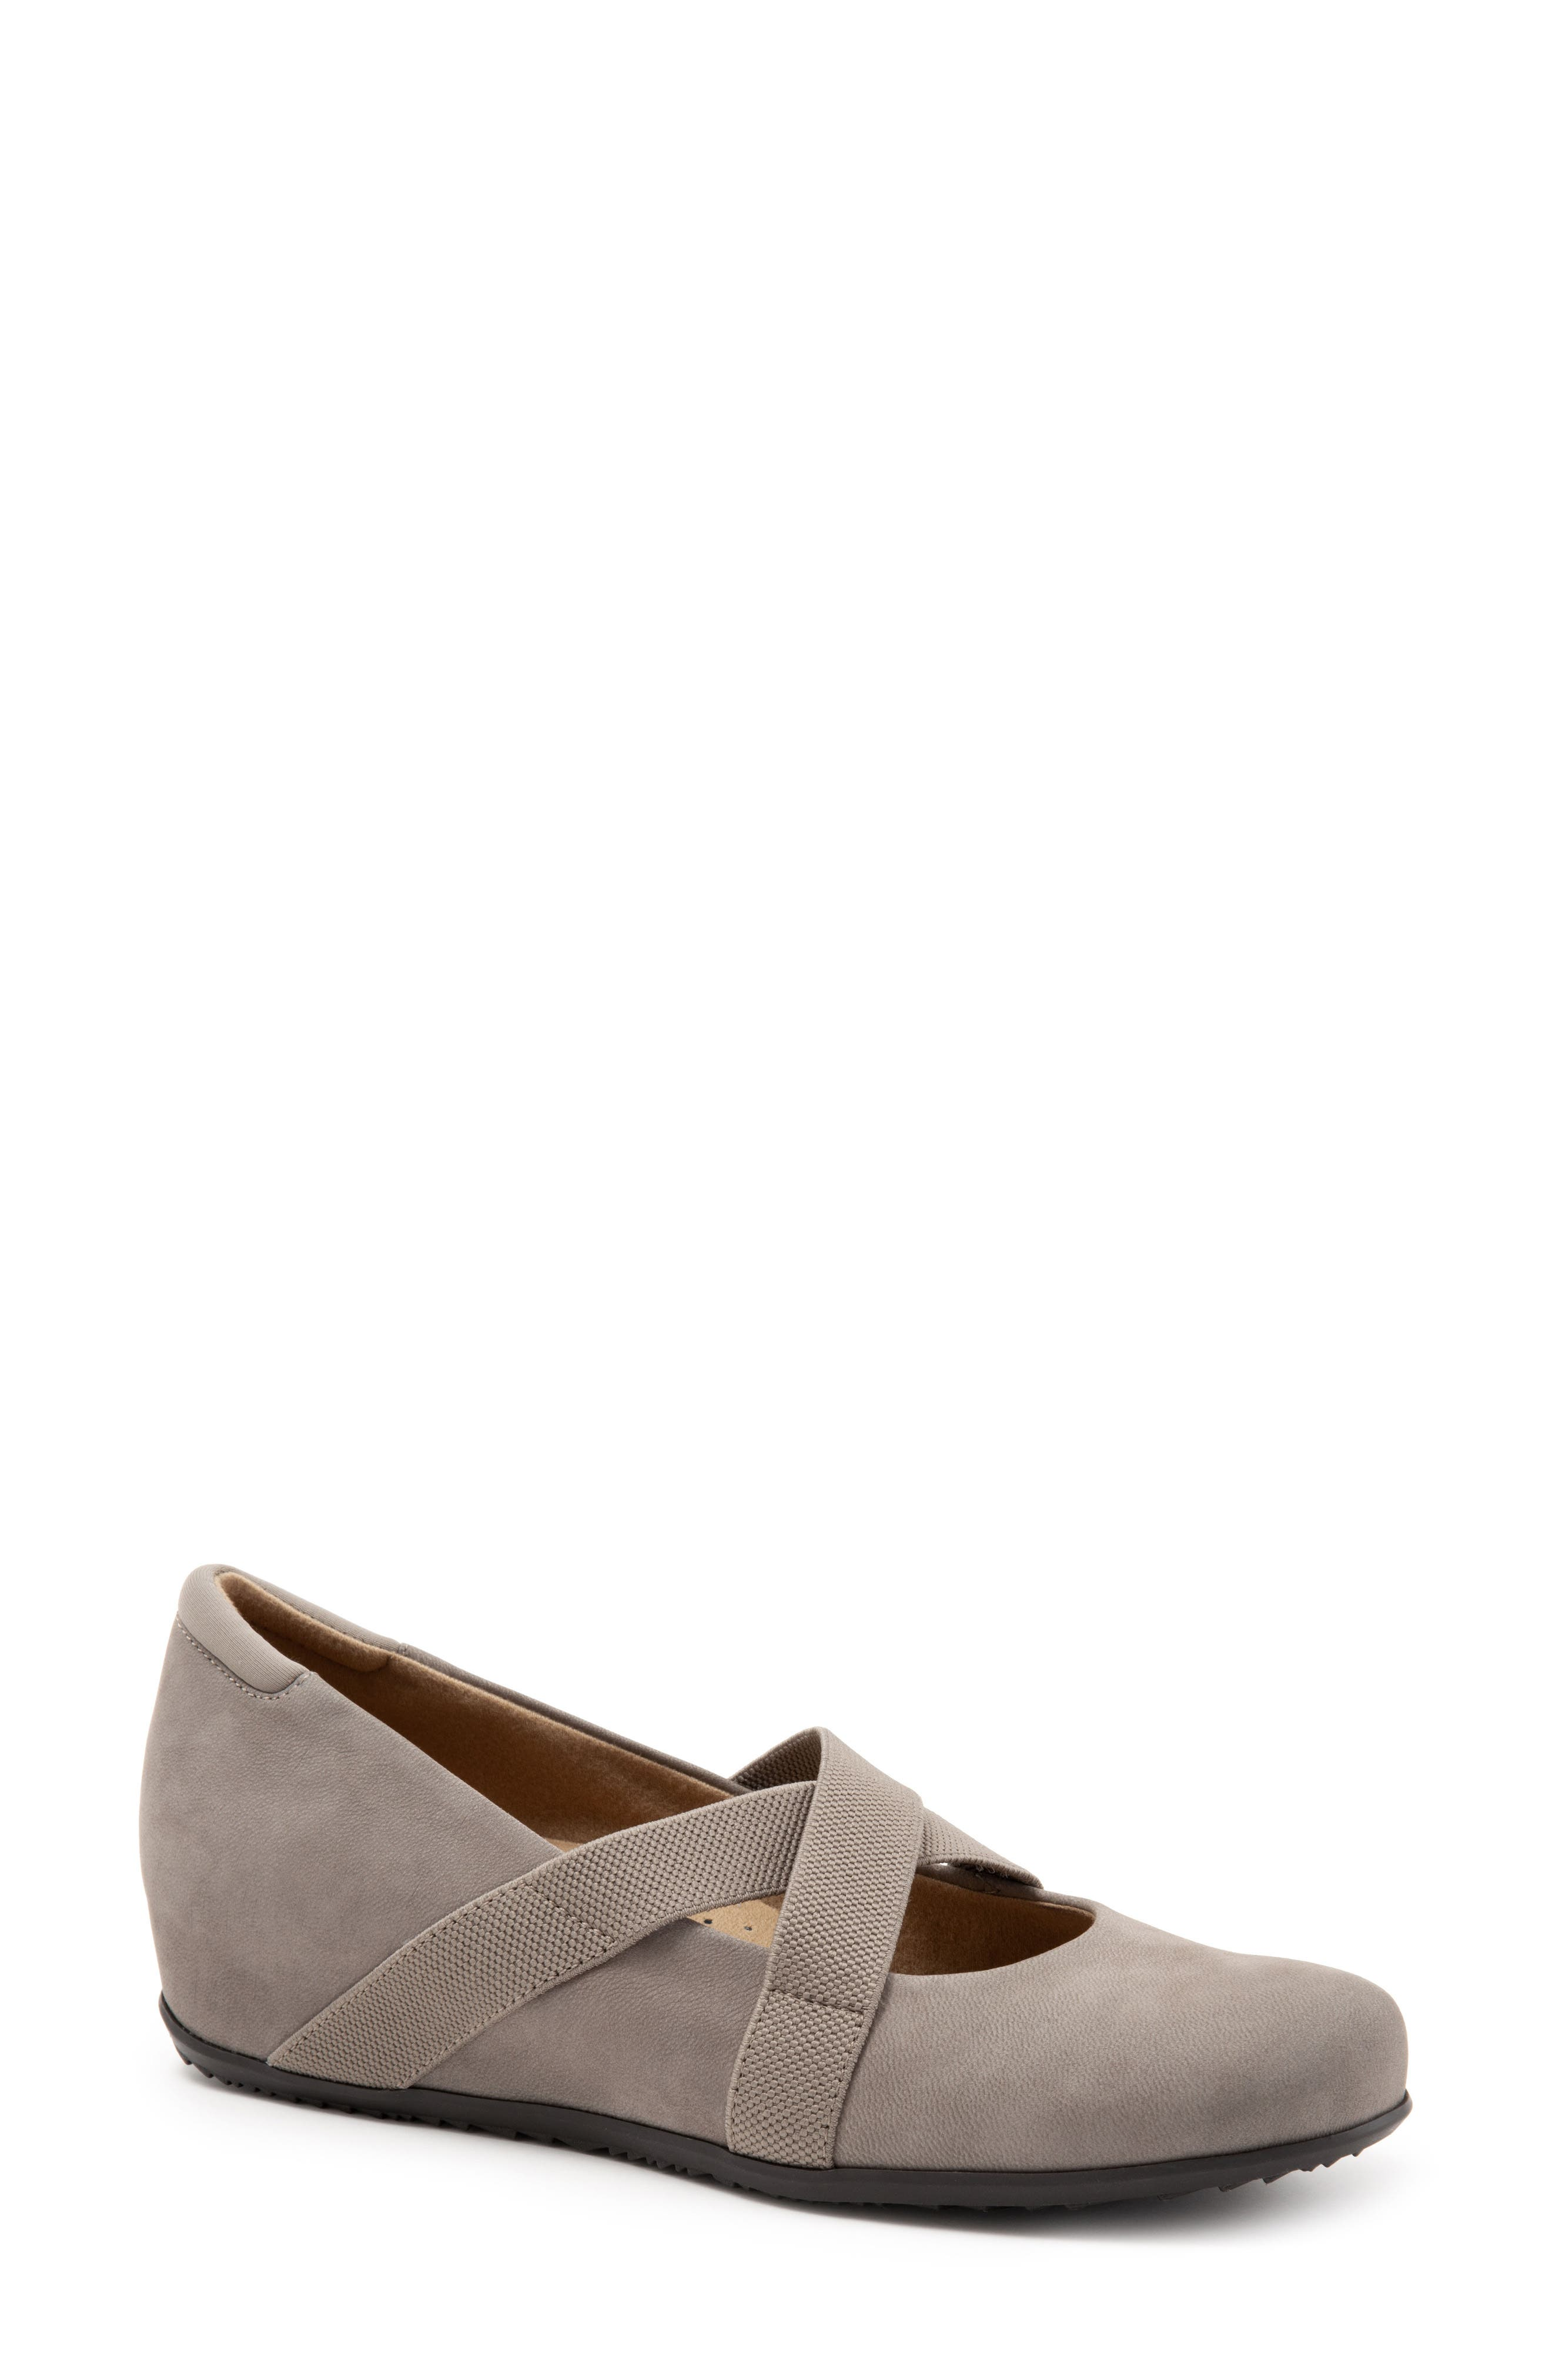 Waverly Mary Jane Wedge,                             Alternate thumbnail 8, color,                             TAUPE LEATHER